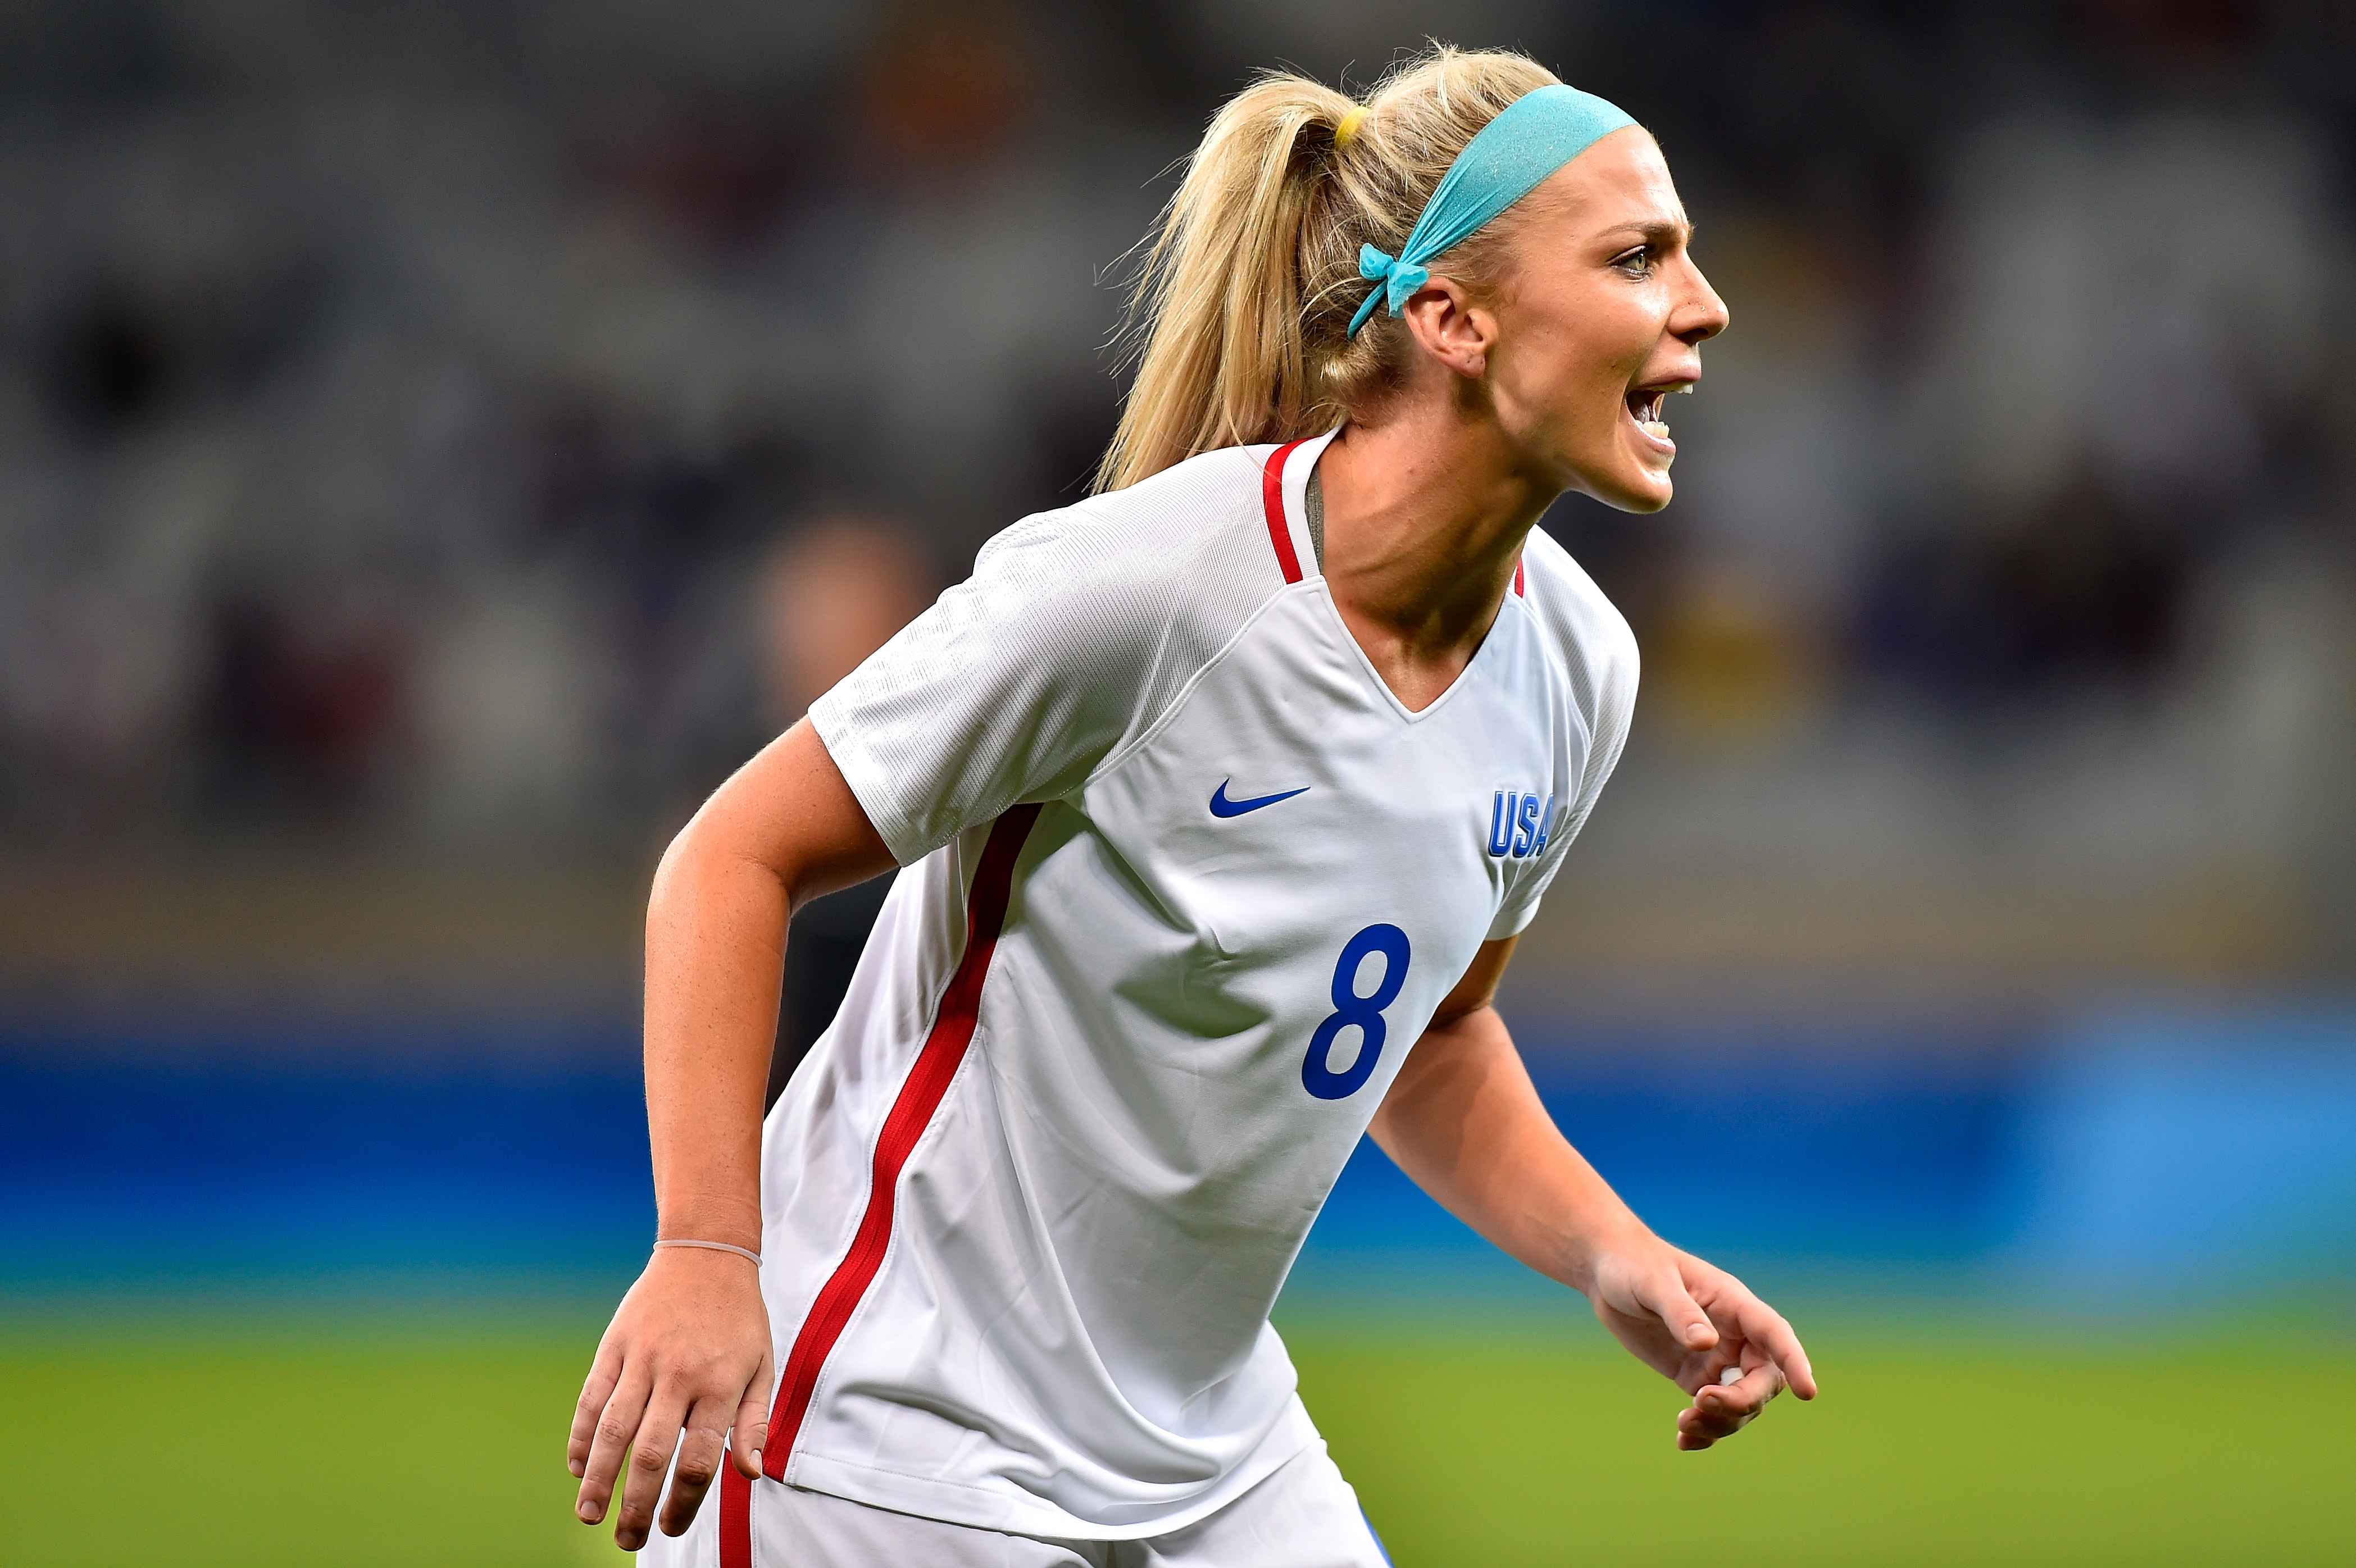 usa sweden stream, olympics soccer stream, united states sweden live streaming, uswnt sweden free stream, uswnt sweden olympics free stream, usa sweden free stream, uswnt sweden vivo , united states sweden olympics soccer stream, rio 2016 live stream